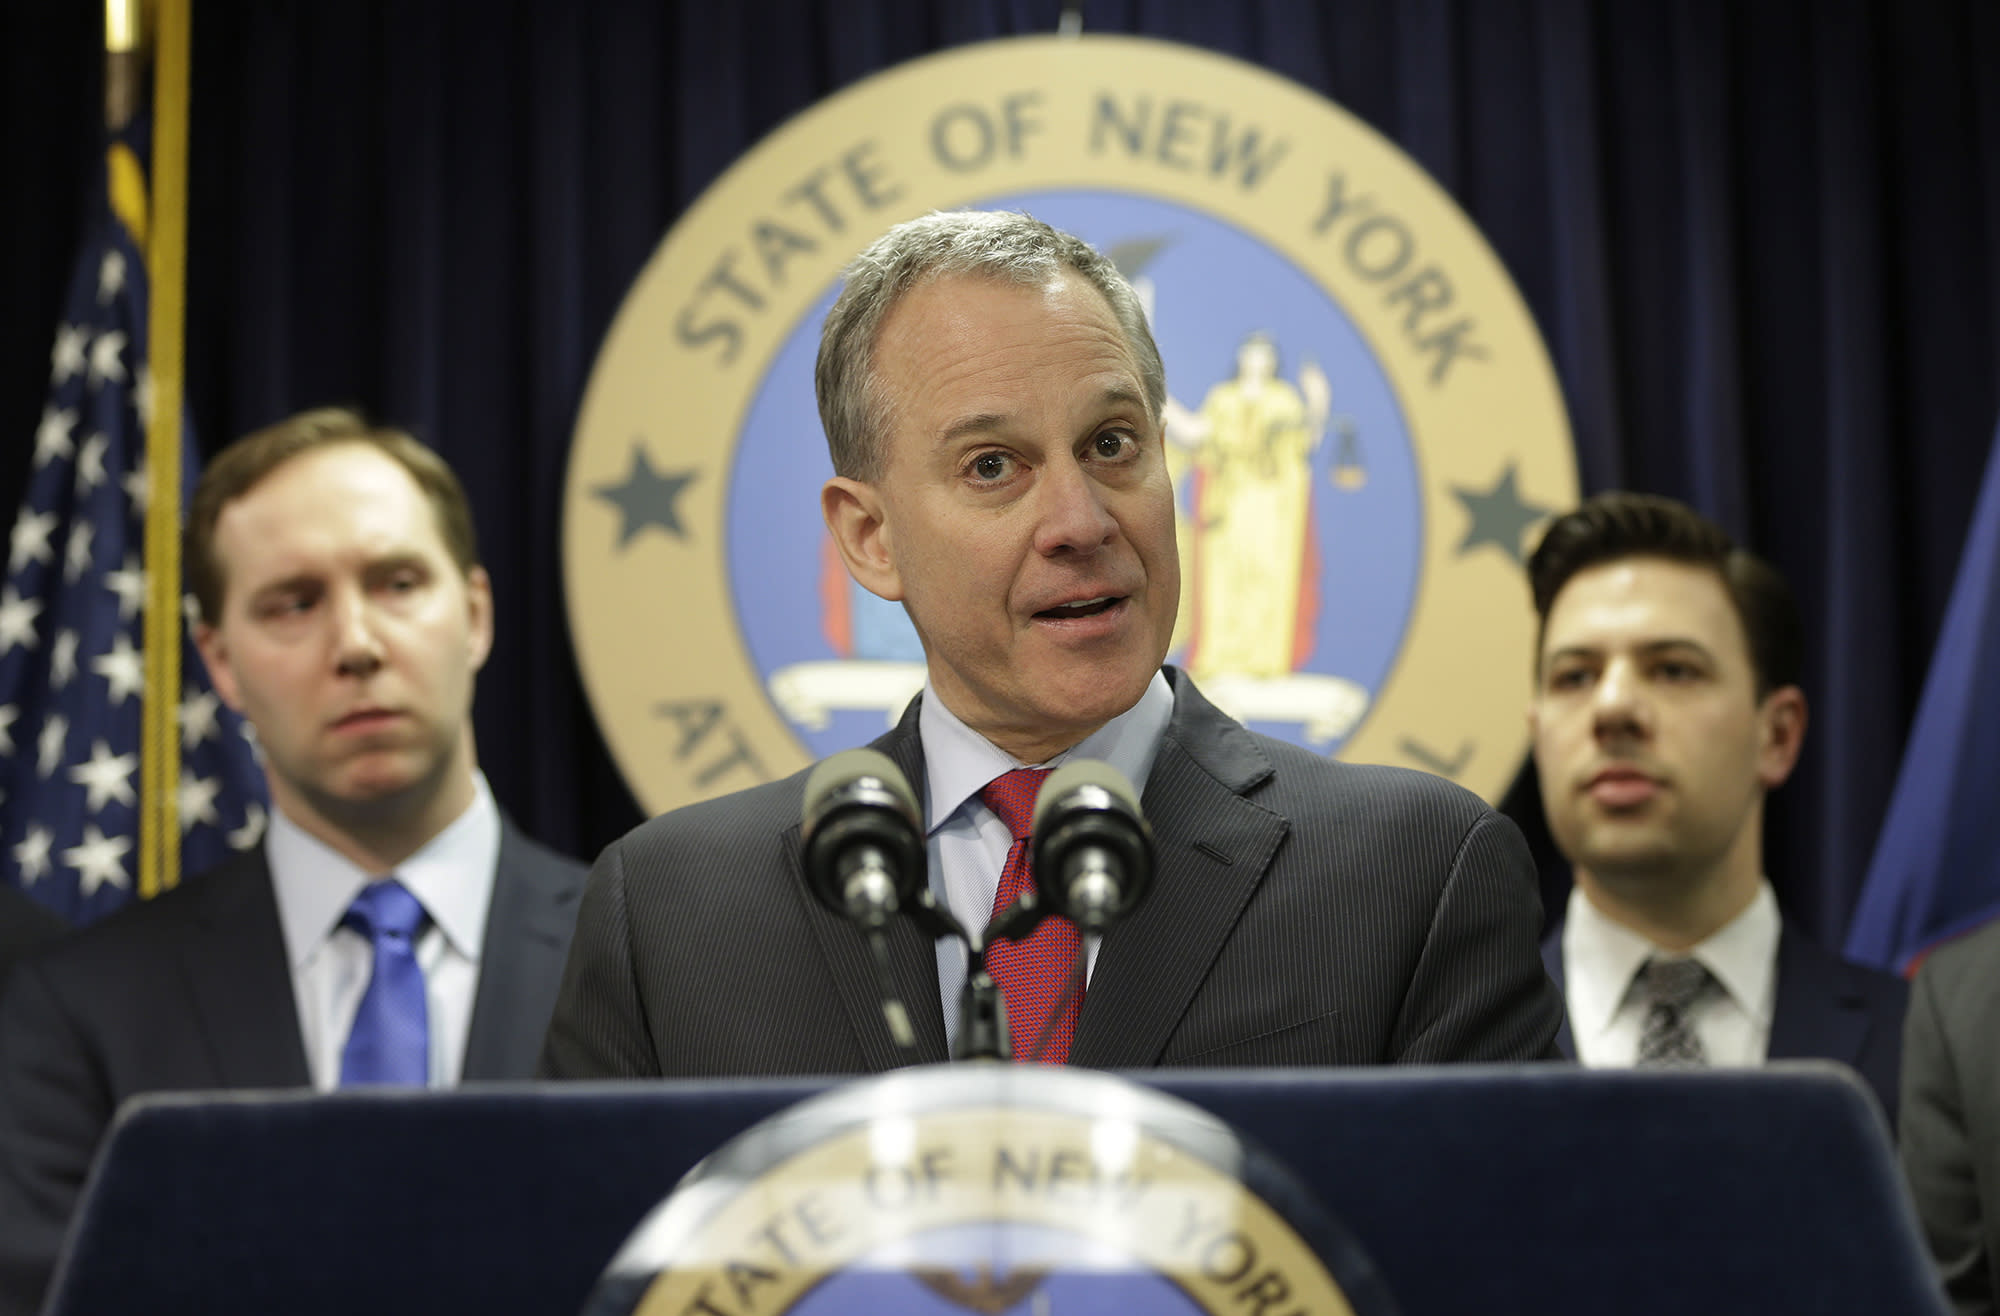 New York Attorney General Eric Schneiderman speaks at a new conference in New York, Monday, March 21, 2016. (Photo: Seth Wenig/AP)